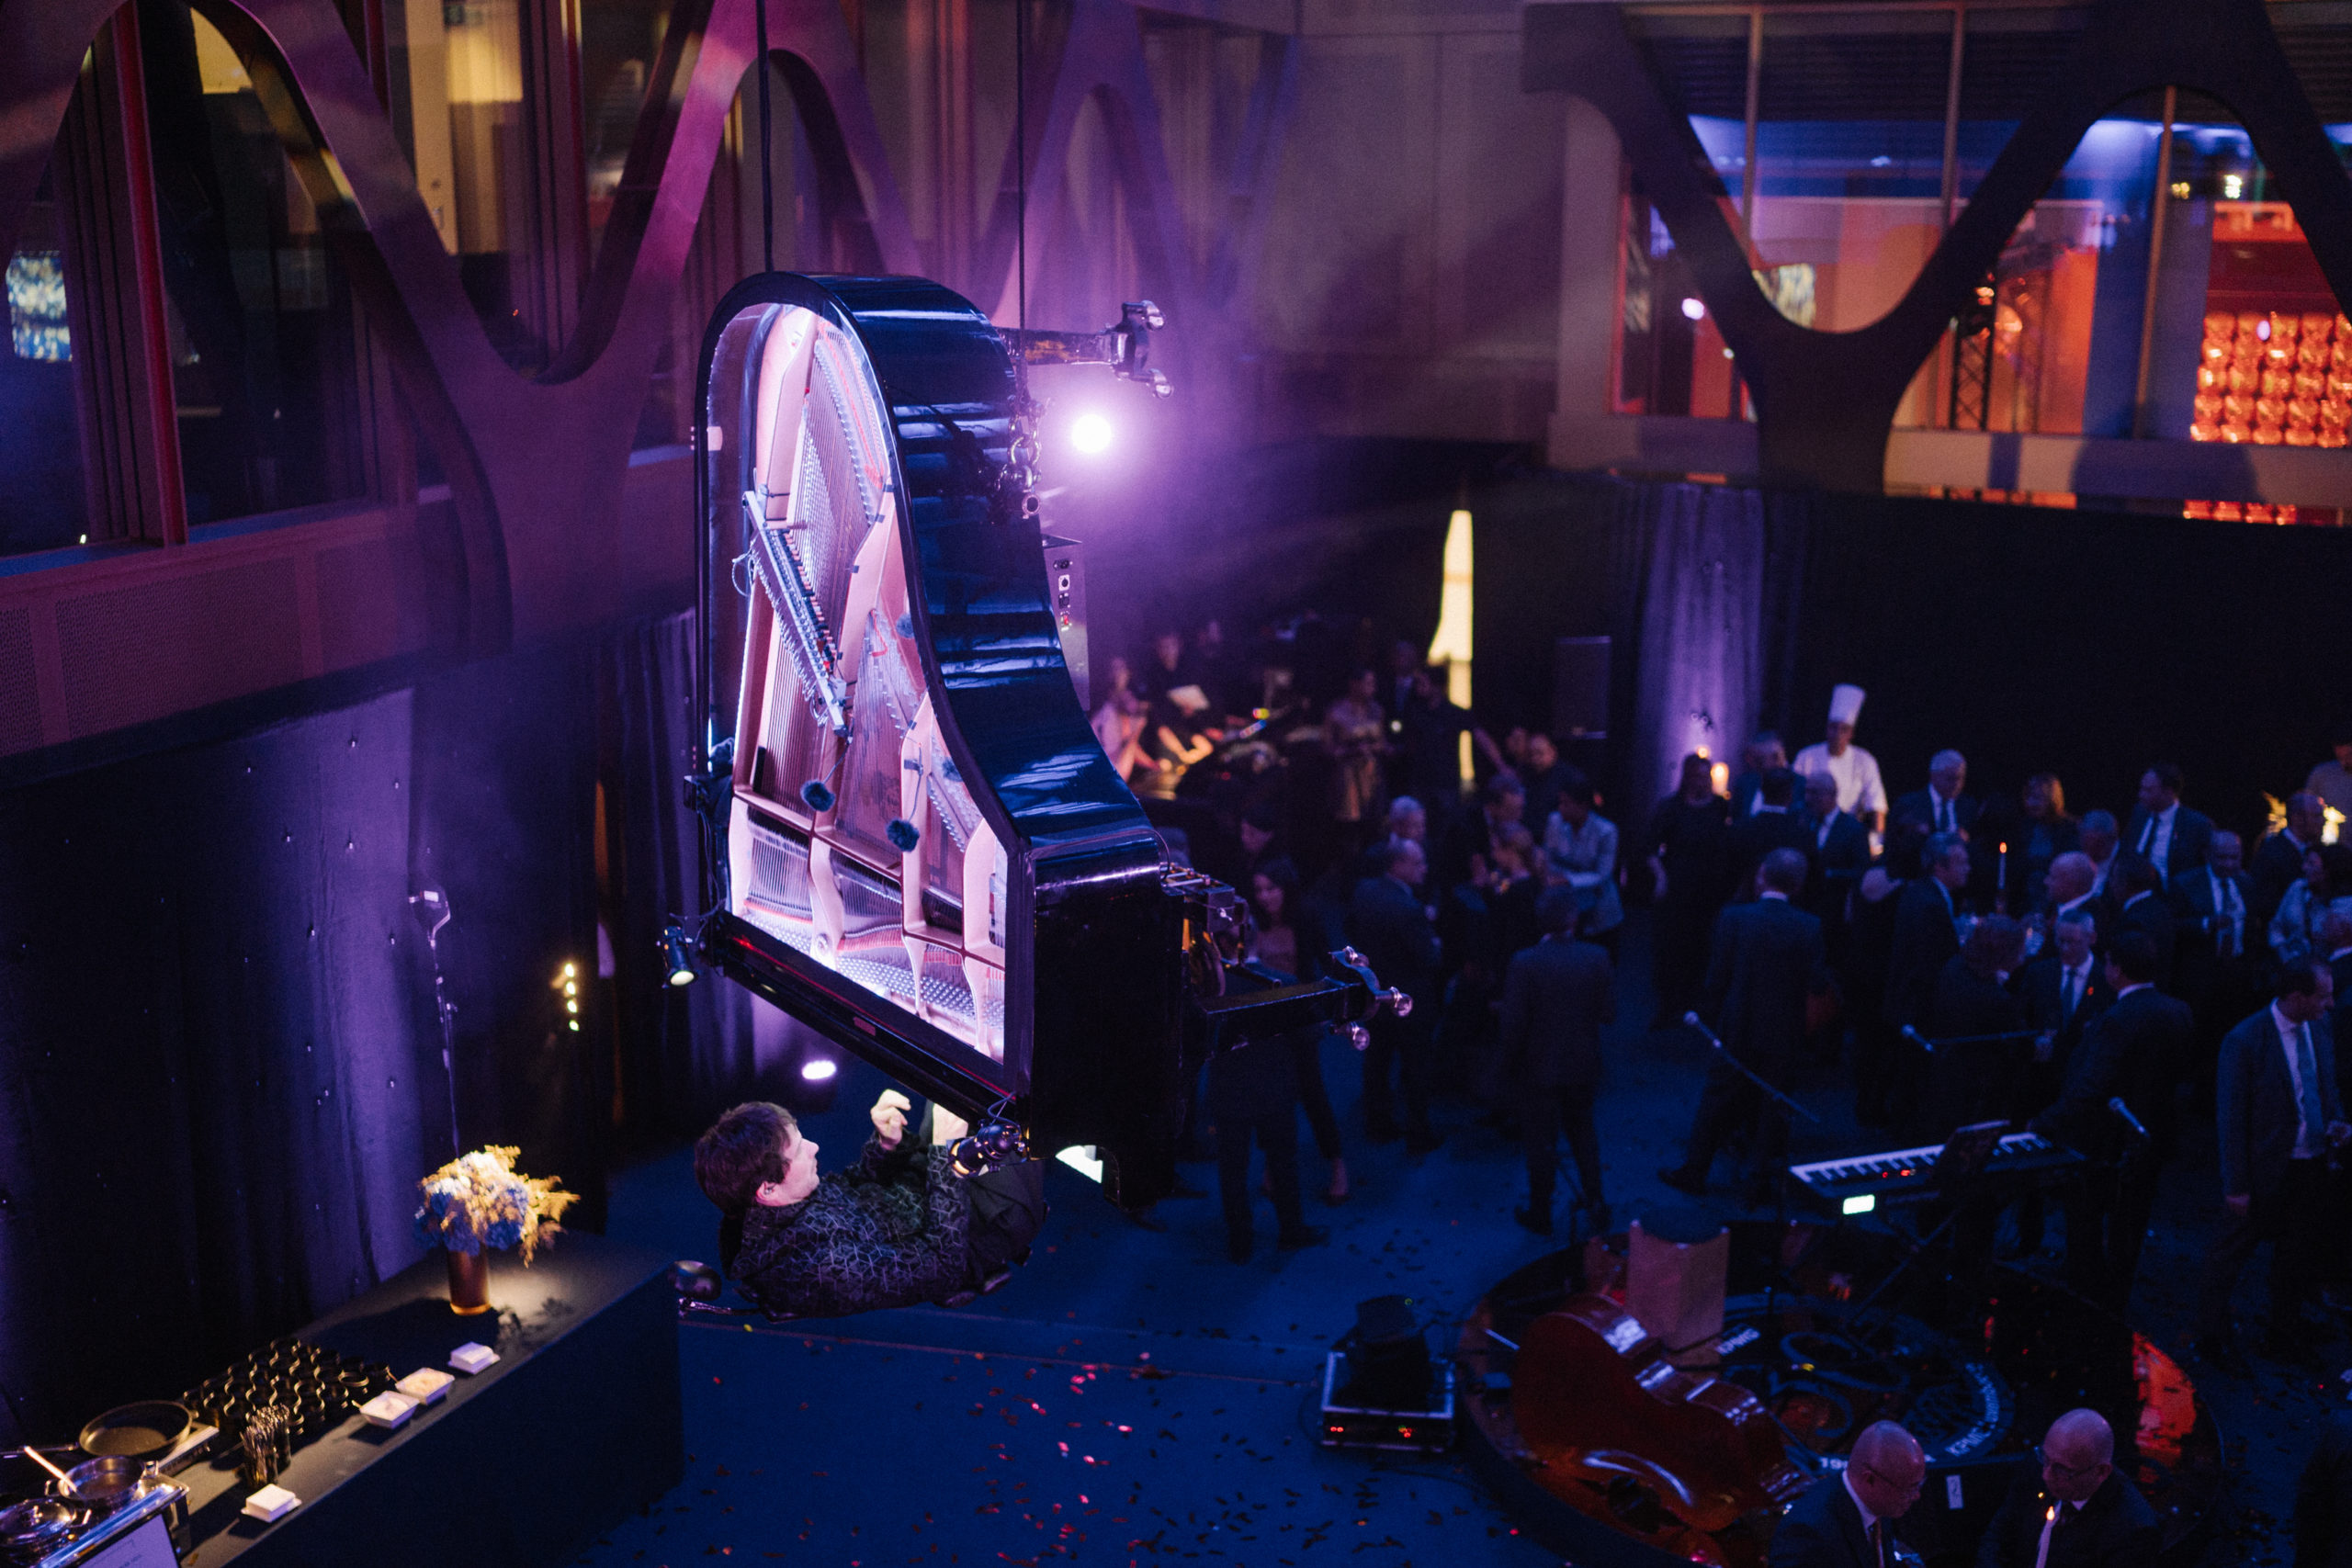 Shine a light event agency Luxembourg - Creates immersives experiences - 30th anniversary KPMG